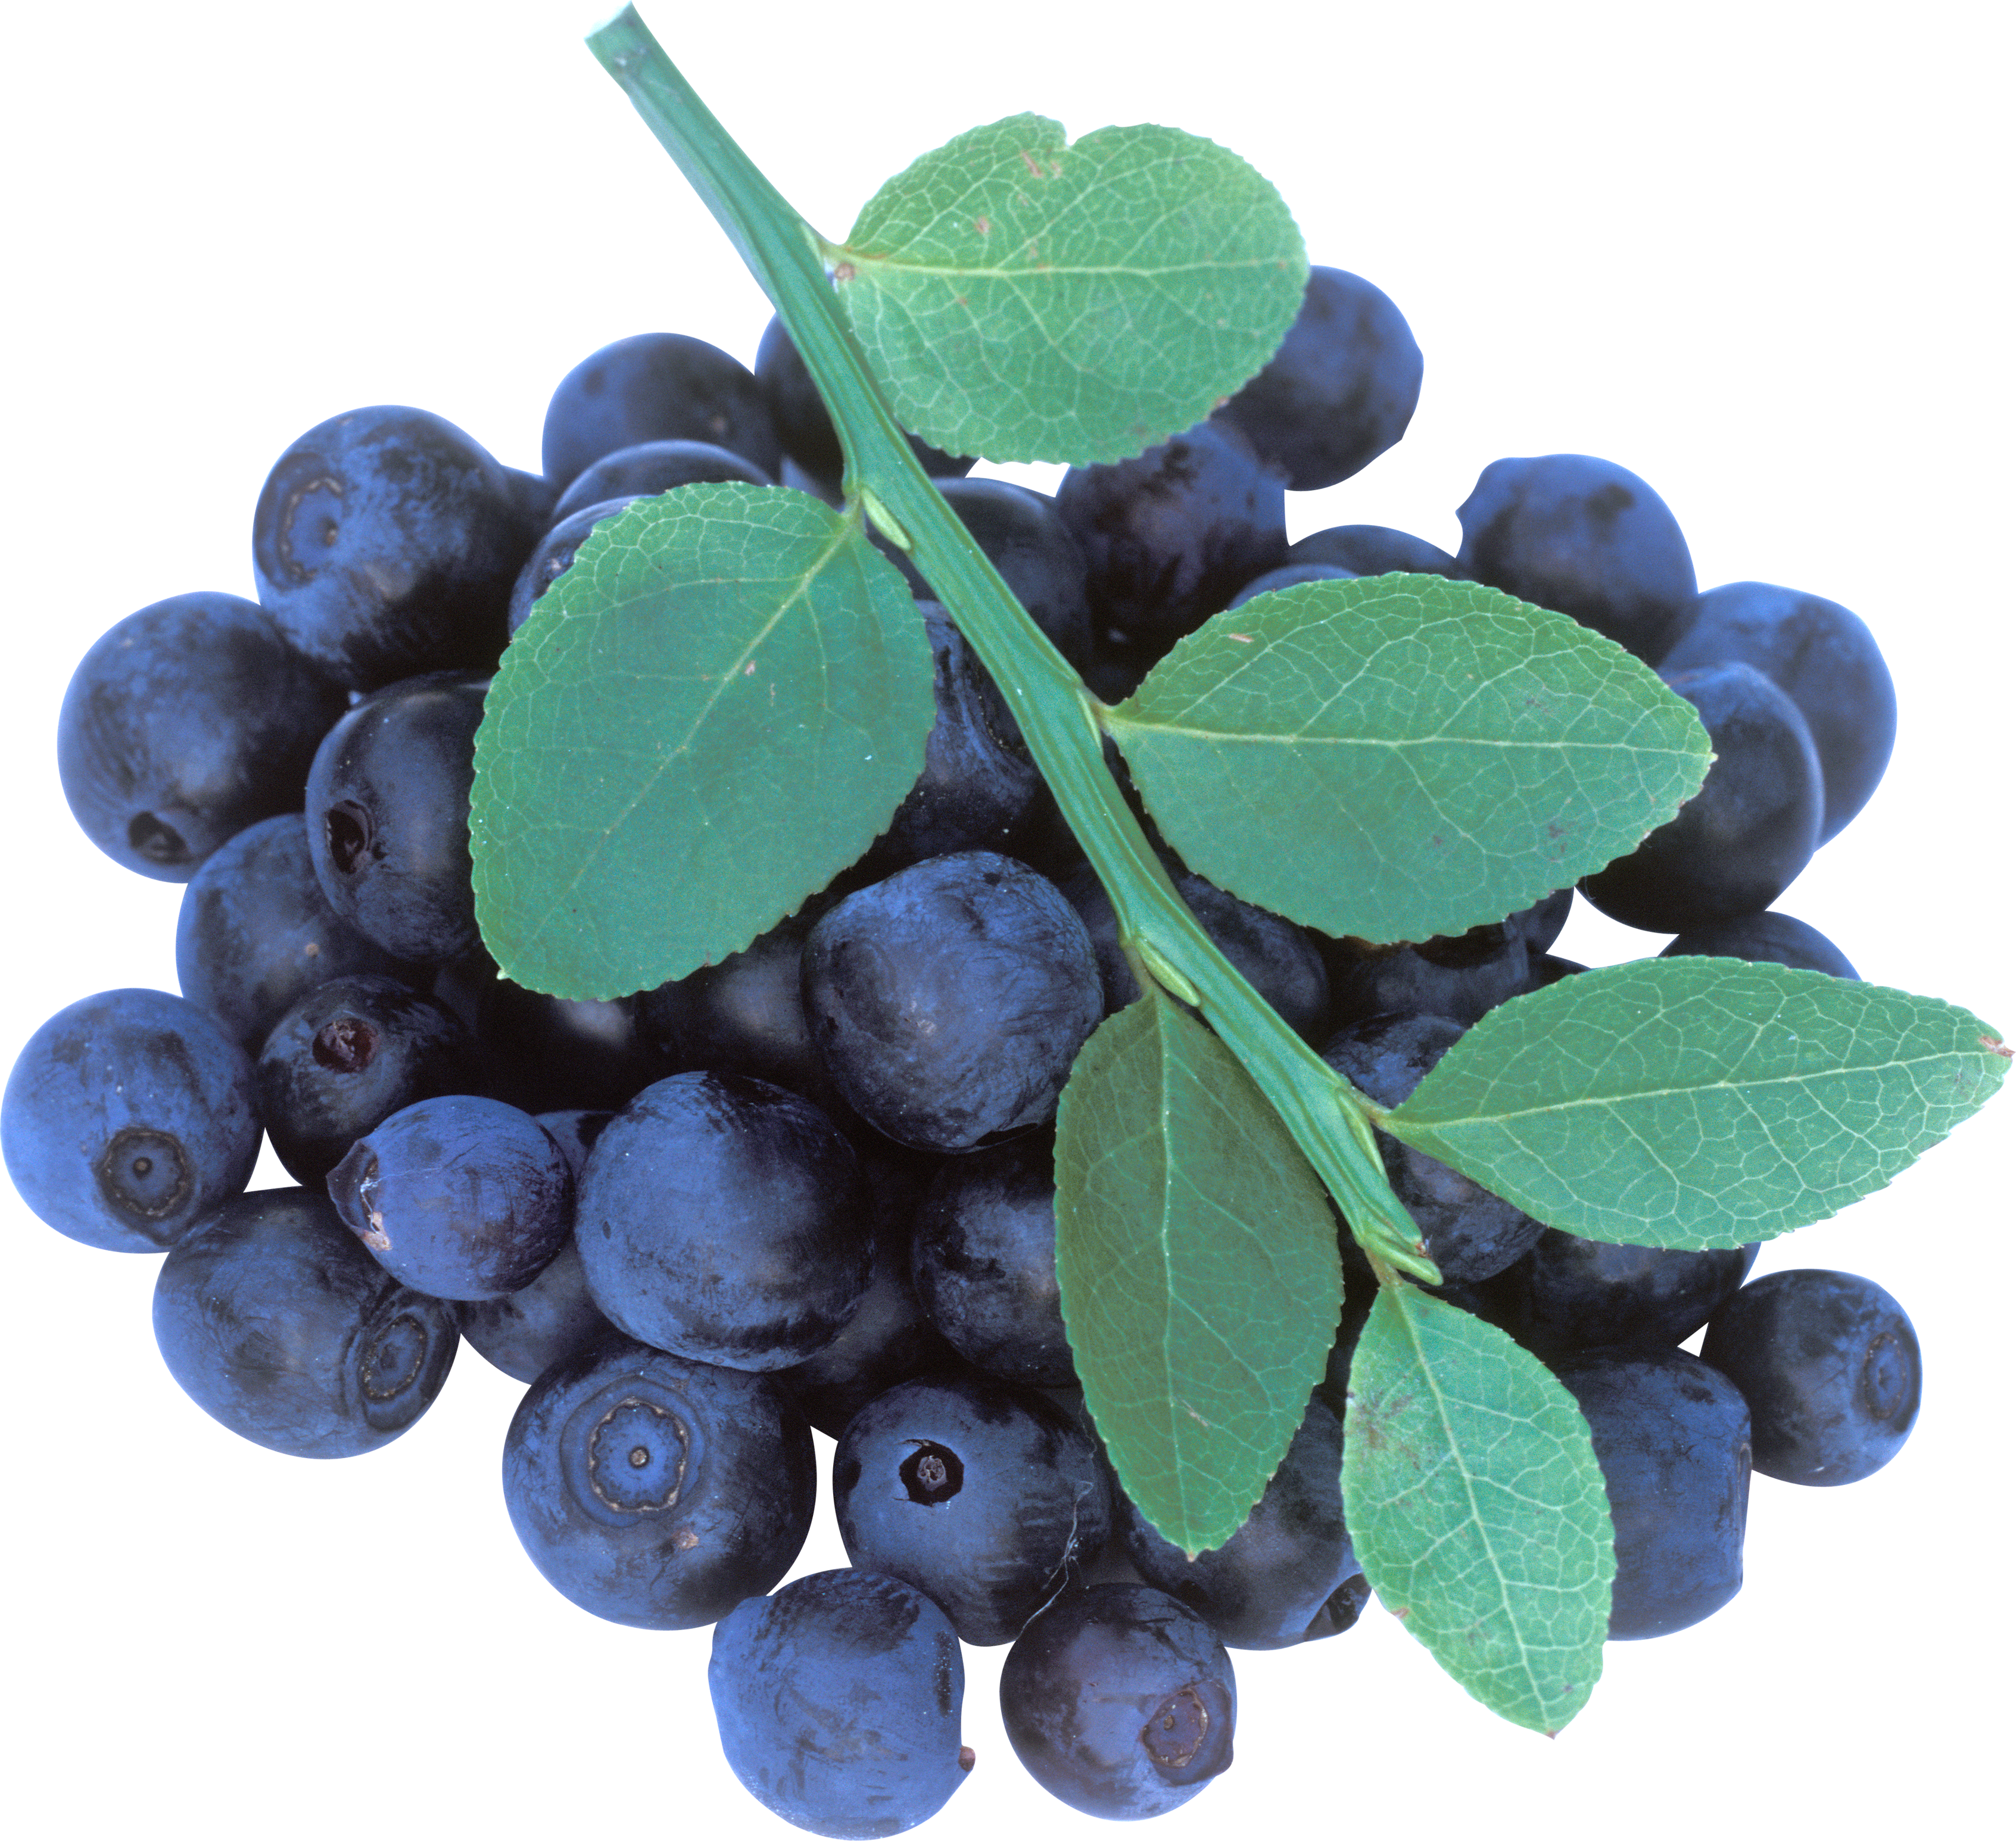 Blueberrys with Leaves PNG Image